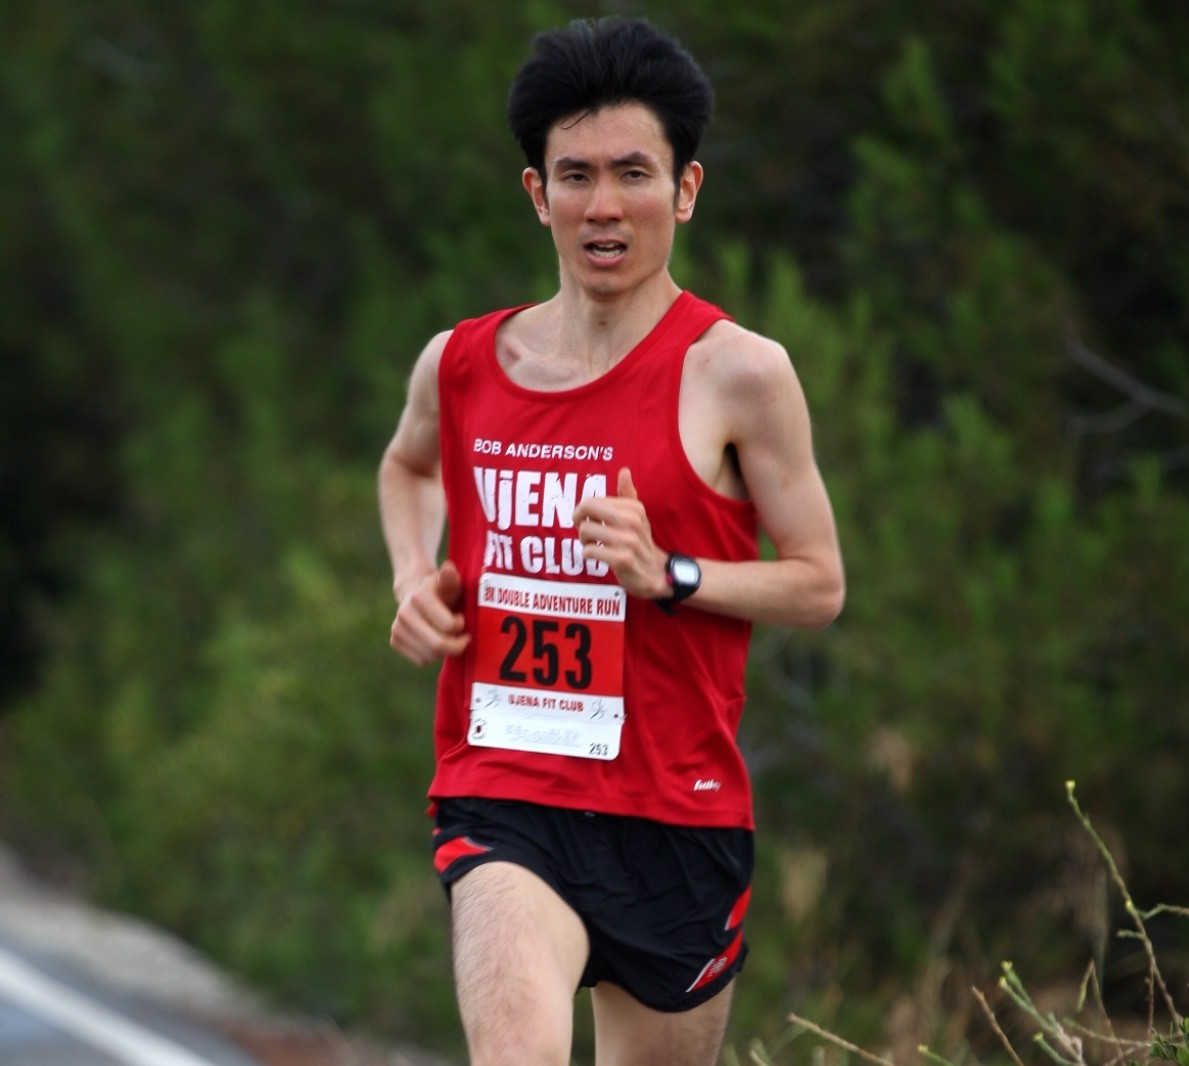 Global Run Challenge Profile:  Sam Tada's first run was a 1500m Race, he finished third in five flat